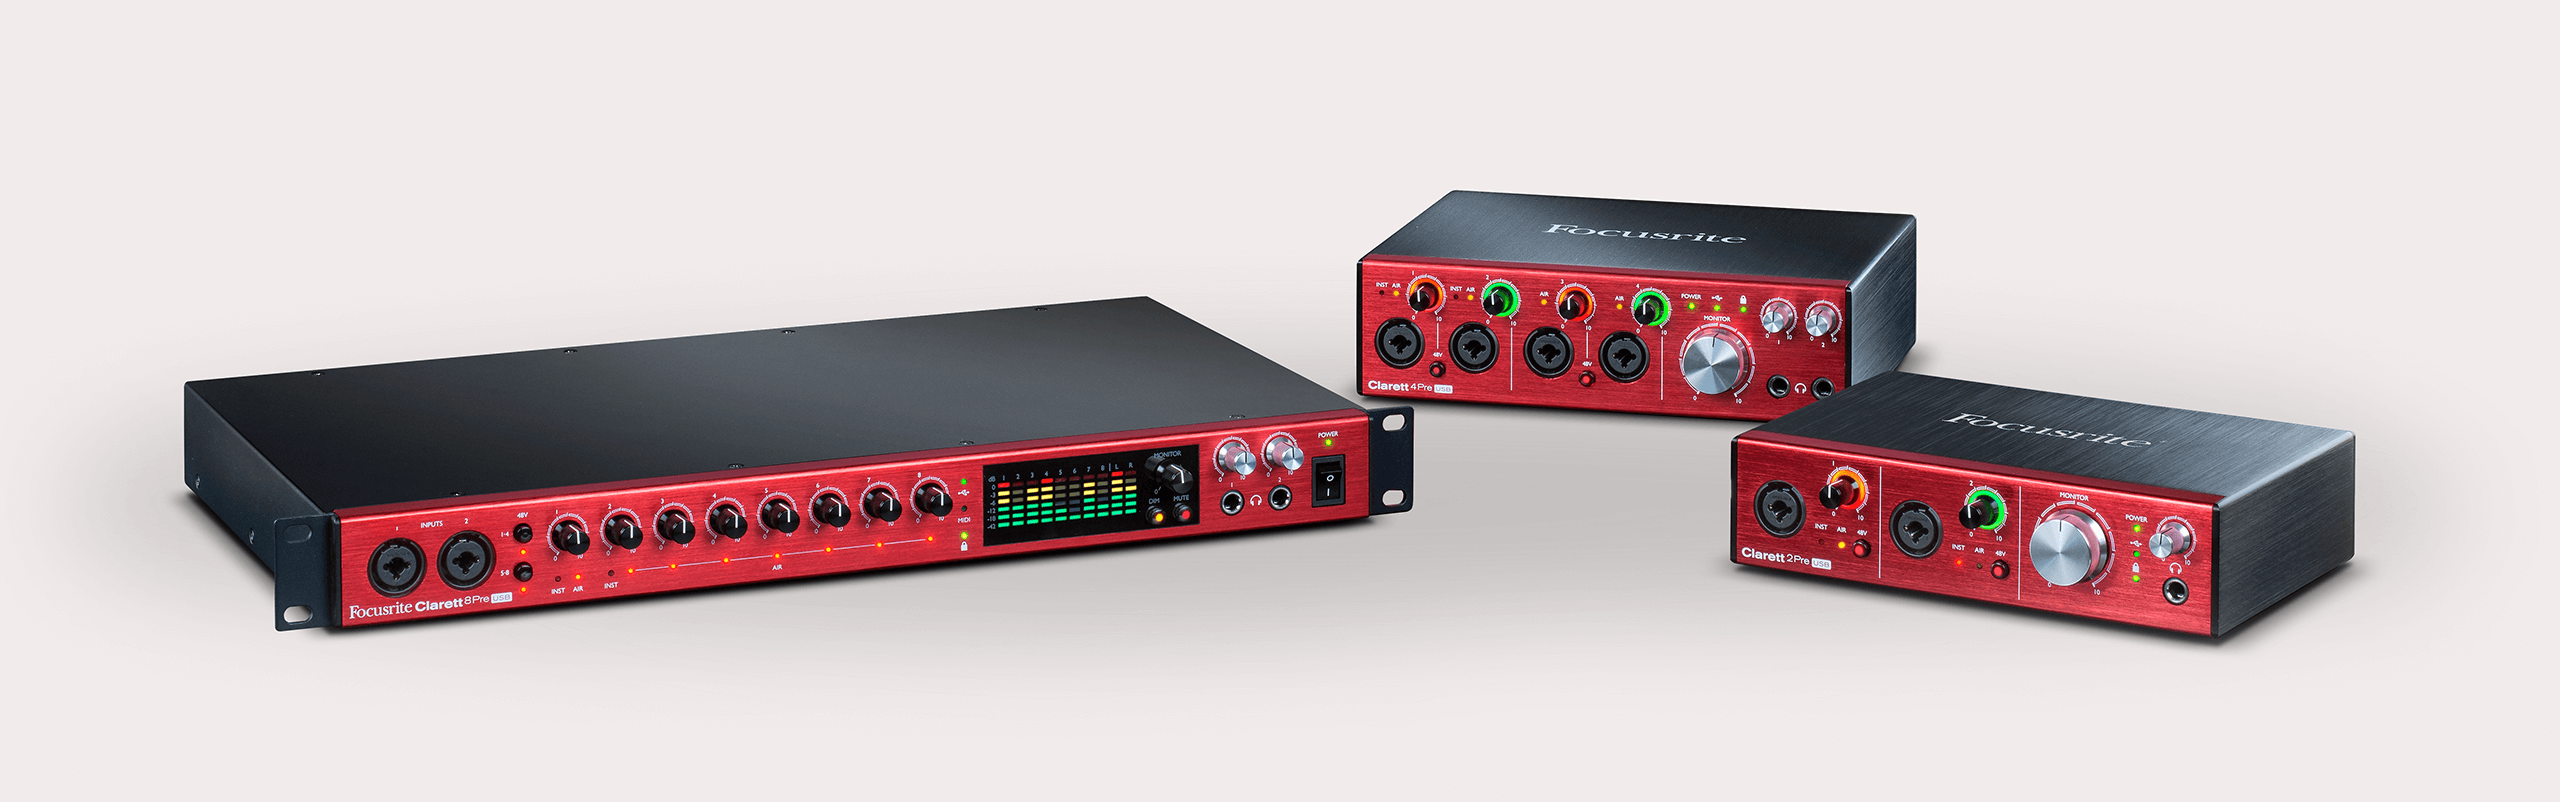 Clarett Sound Now On Usb Focusrite Microphone Preamplifier Based Tlc251 The Line Features Specially Designed High Performance Low Noise 128db Ein Mic Pres With